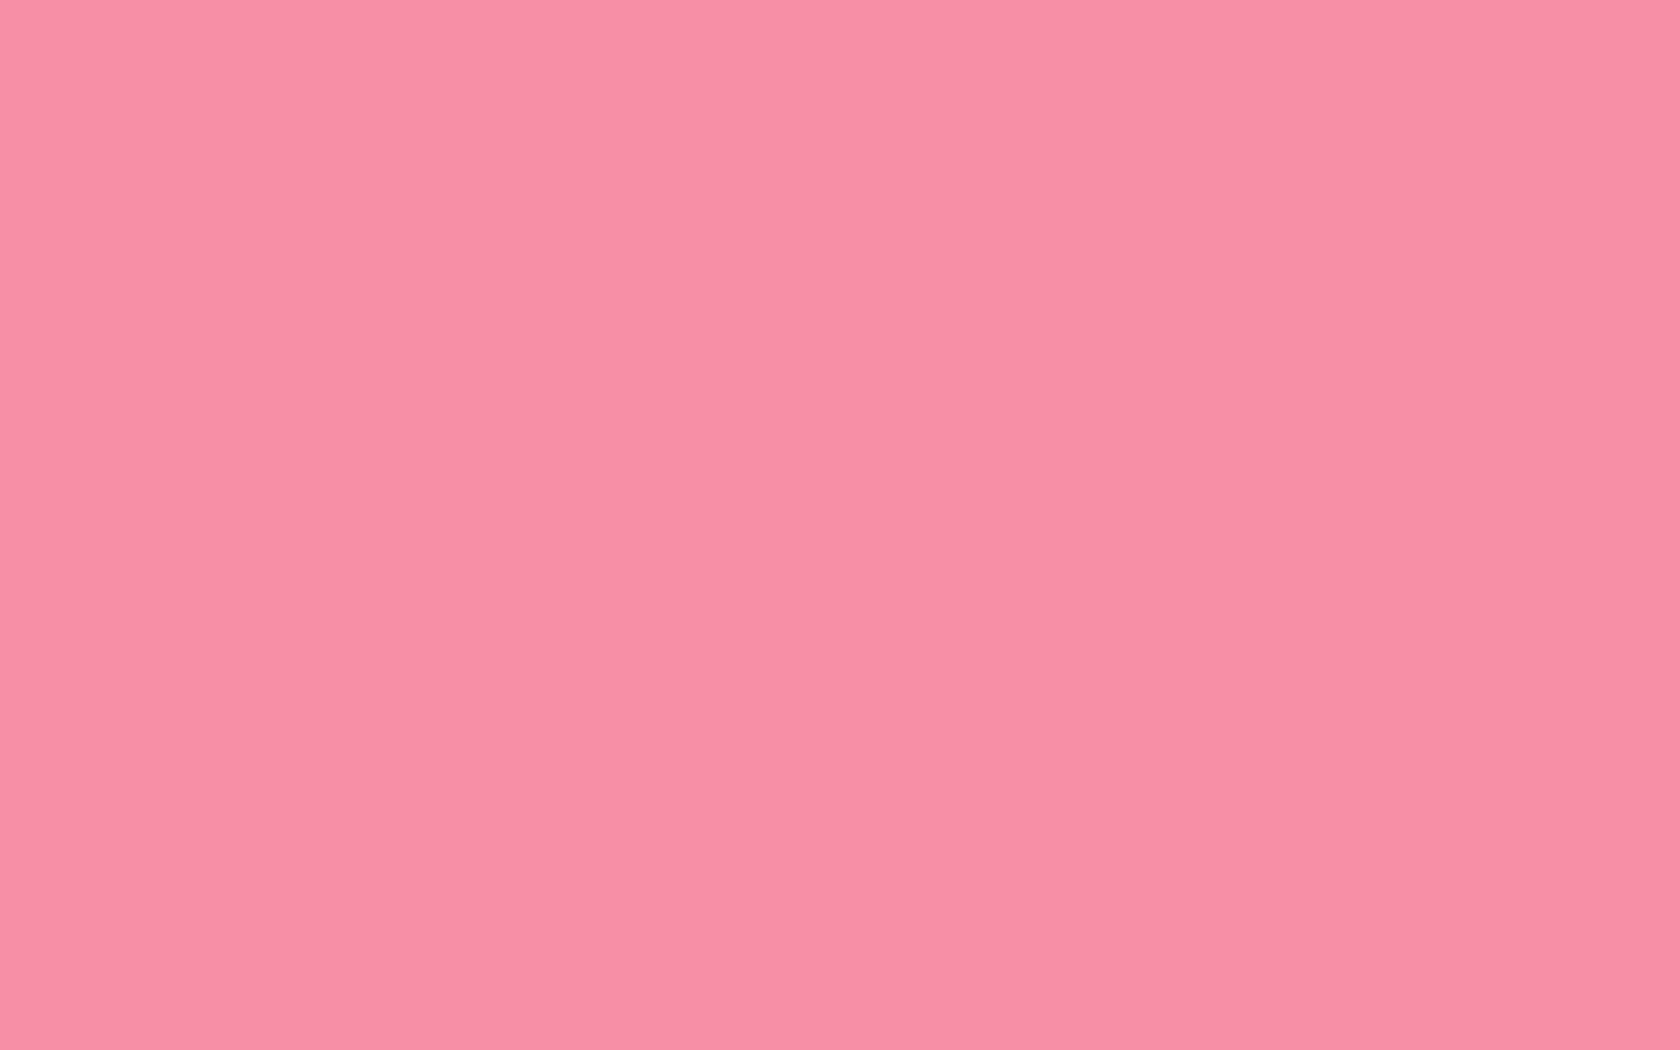 1680x1050 Pink Sherbet Solid Color Background